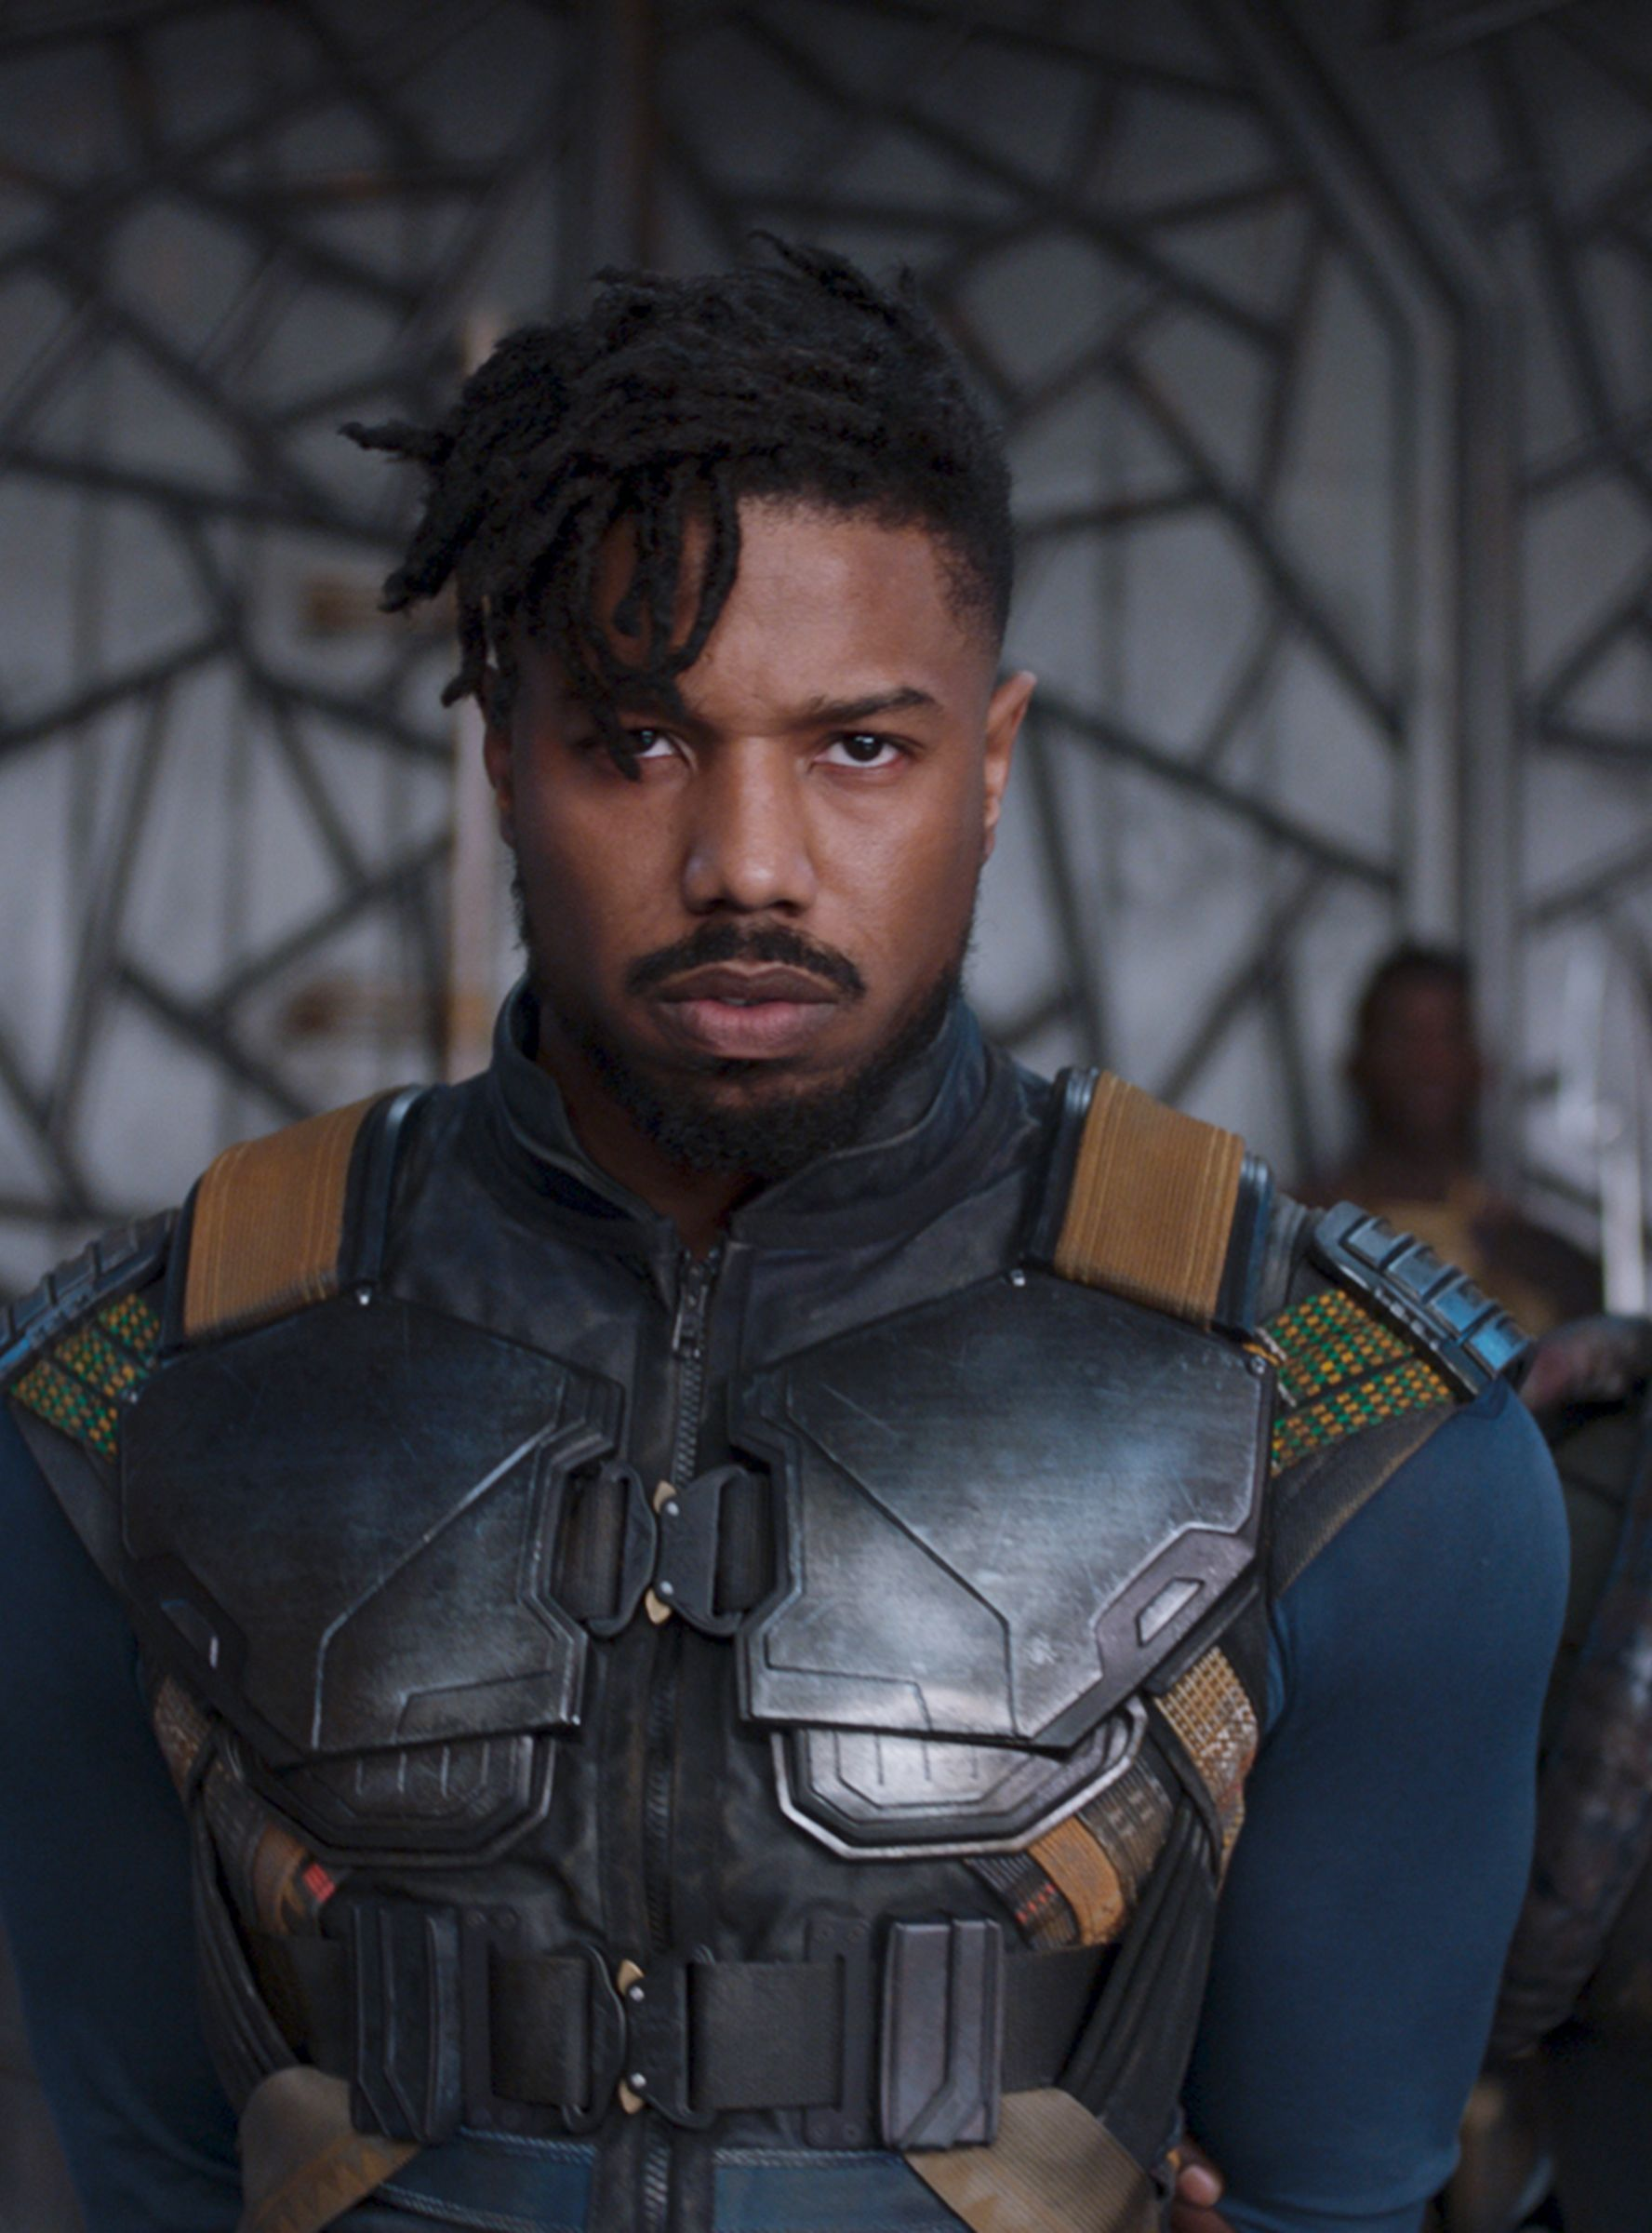 Instagram Is Obsessed With This Black Panther Hairstyle Black Panther Character Black Panther Villain Black Panther